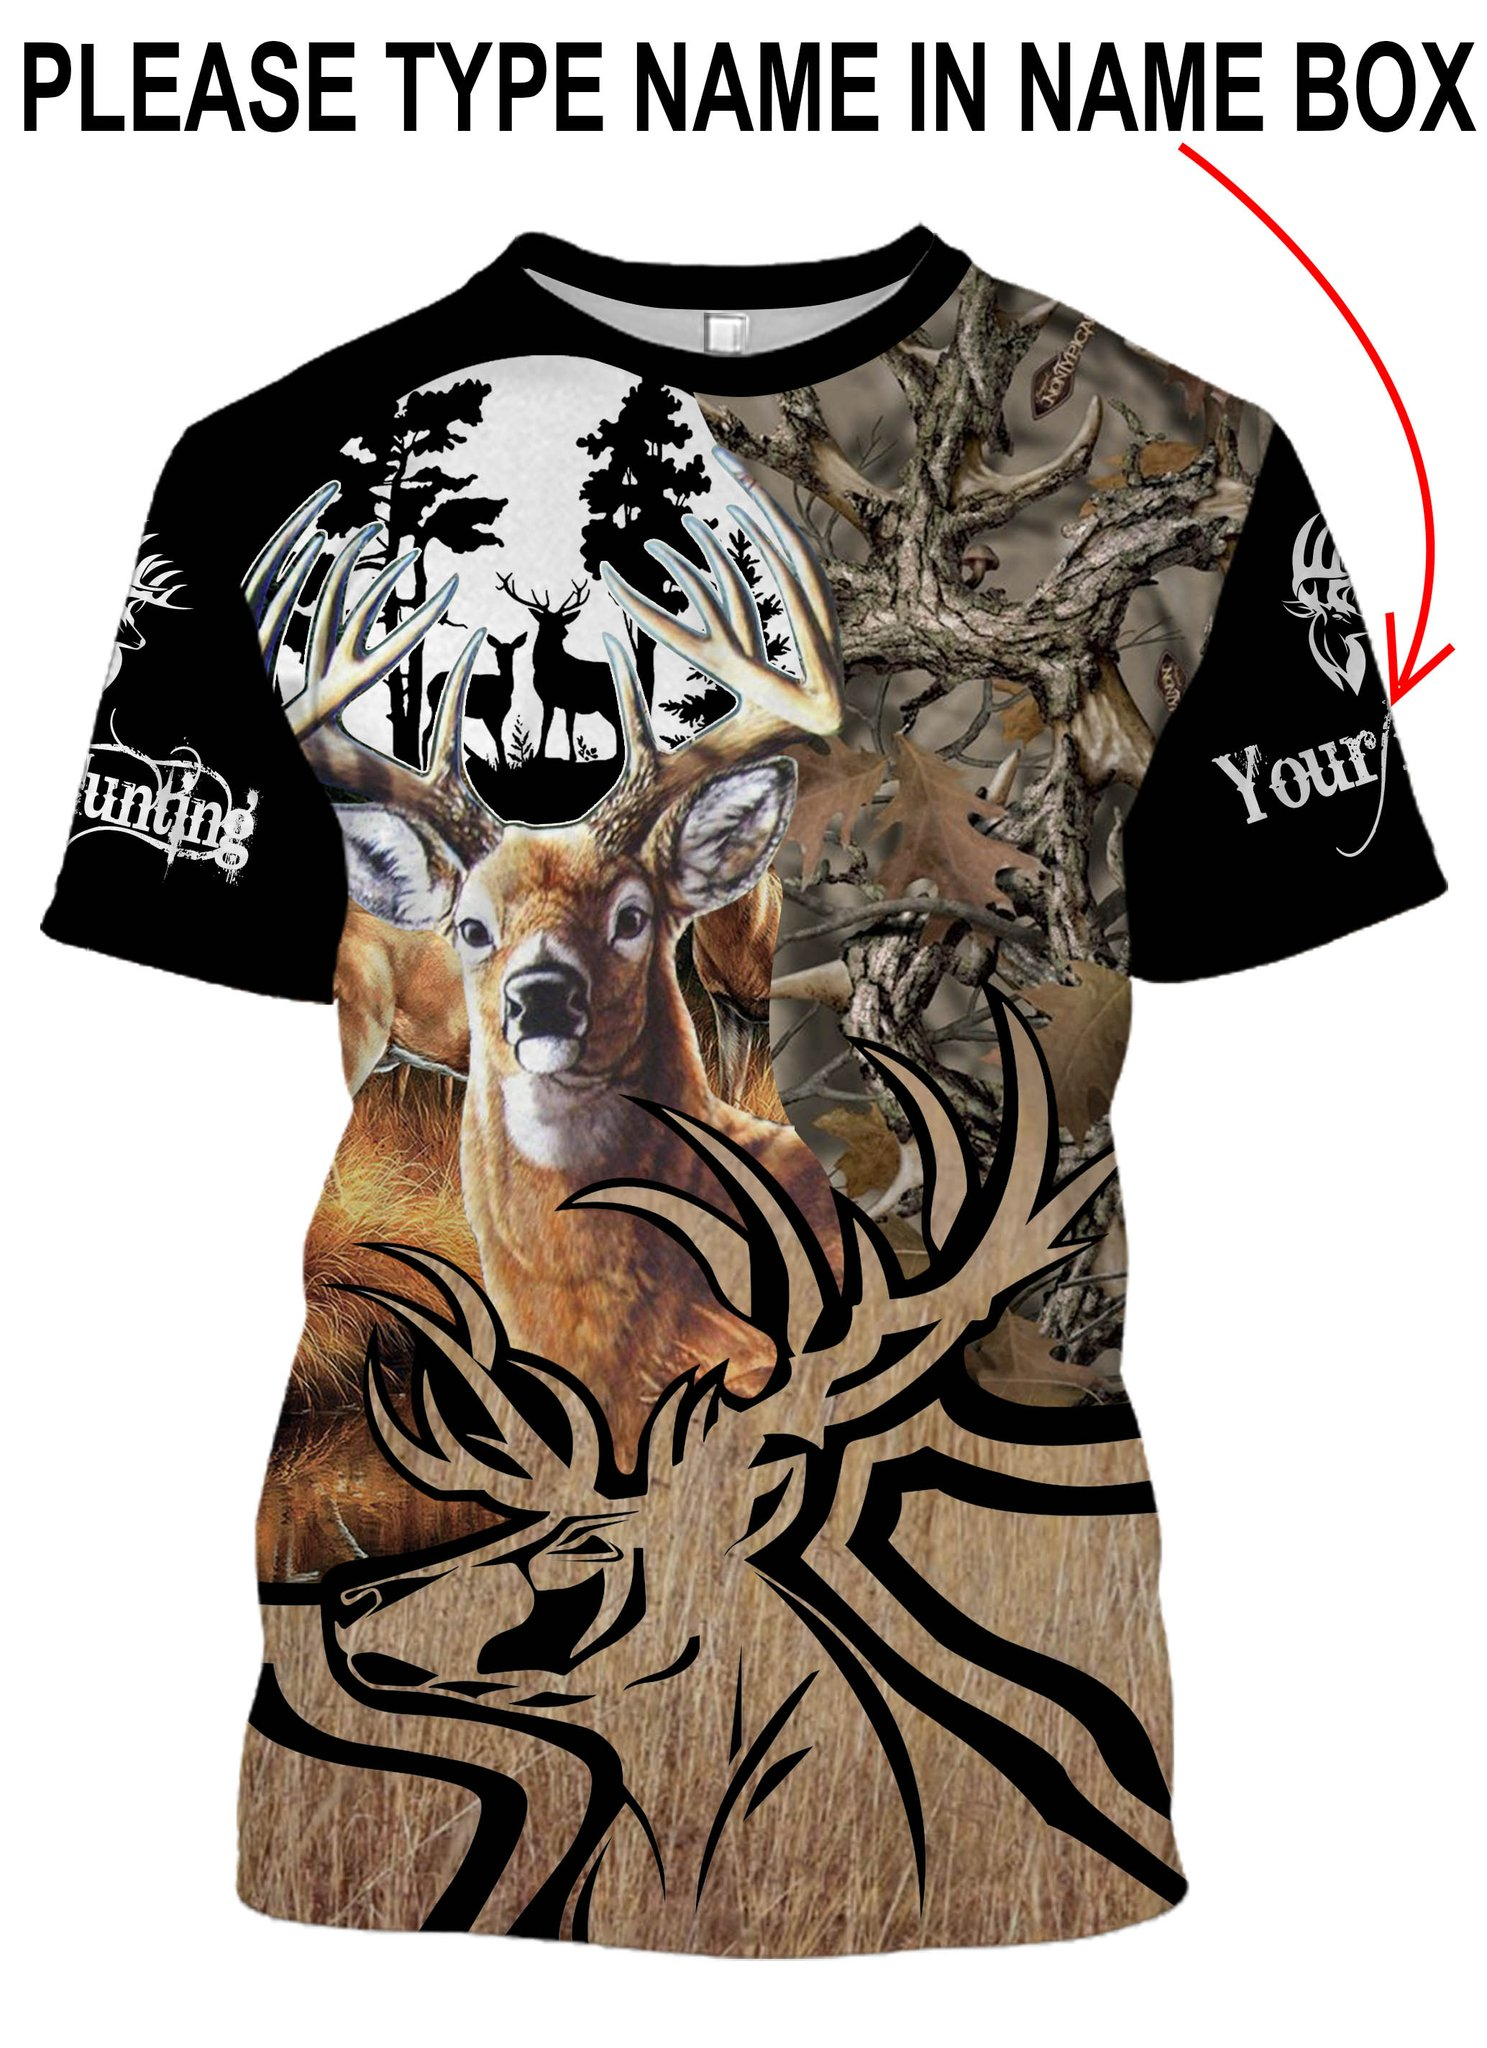 Deer hunting personalized full printing tshirt